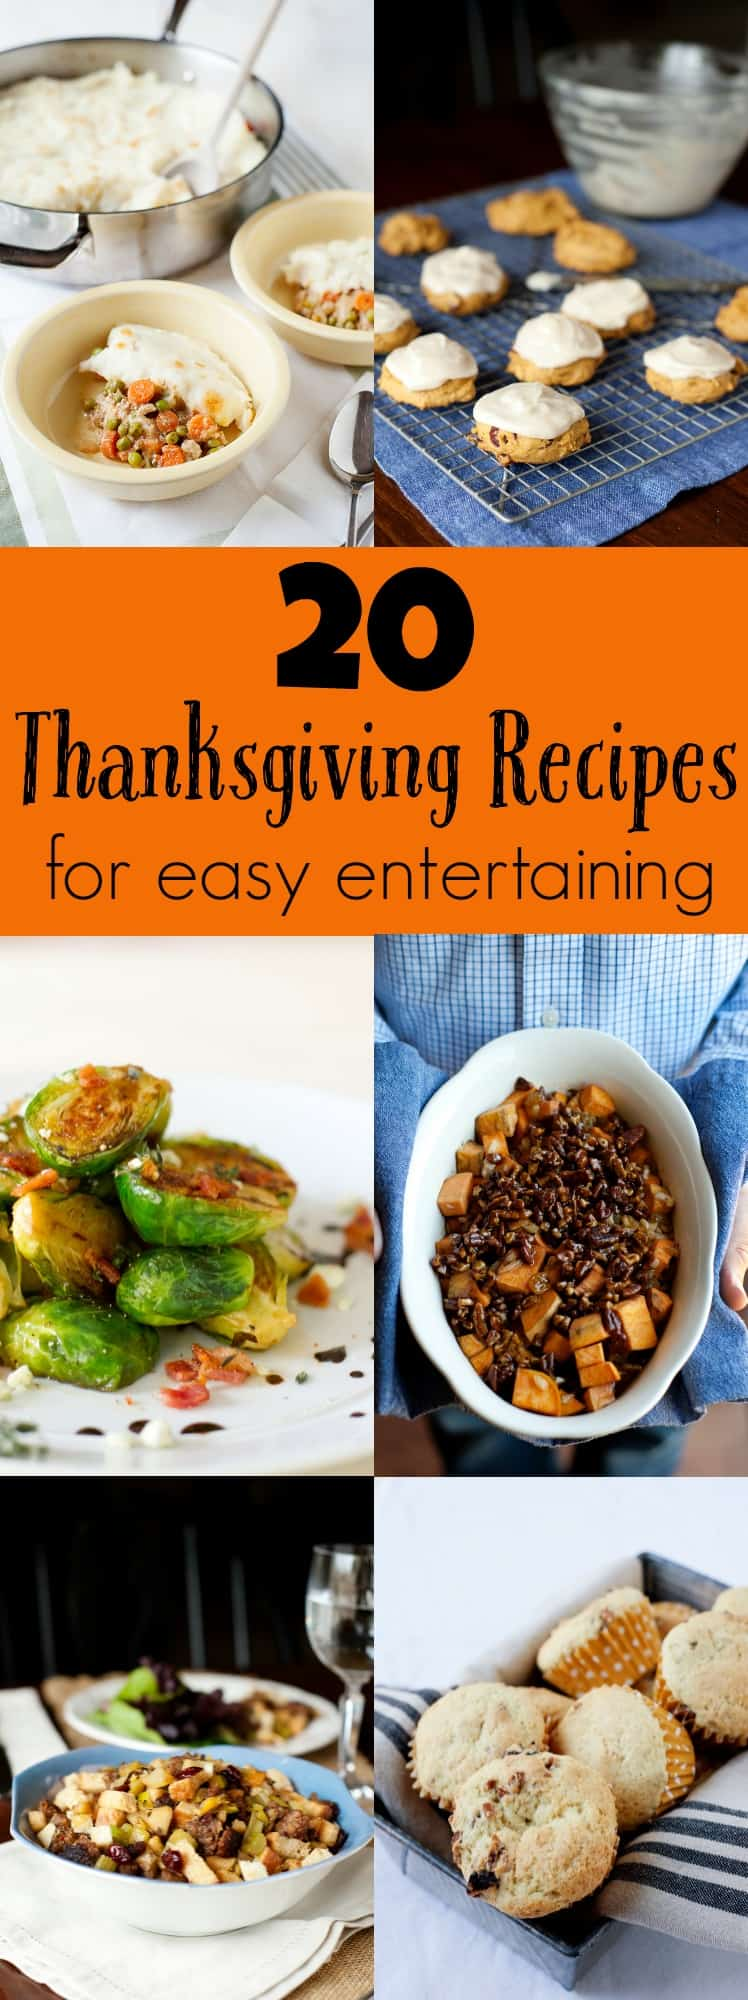 Need a Thanksgiving Meal Plan for easy entertaining? This 20 recipe ebook offers prep-ahead and storage tips and recipes with real ingredients!